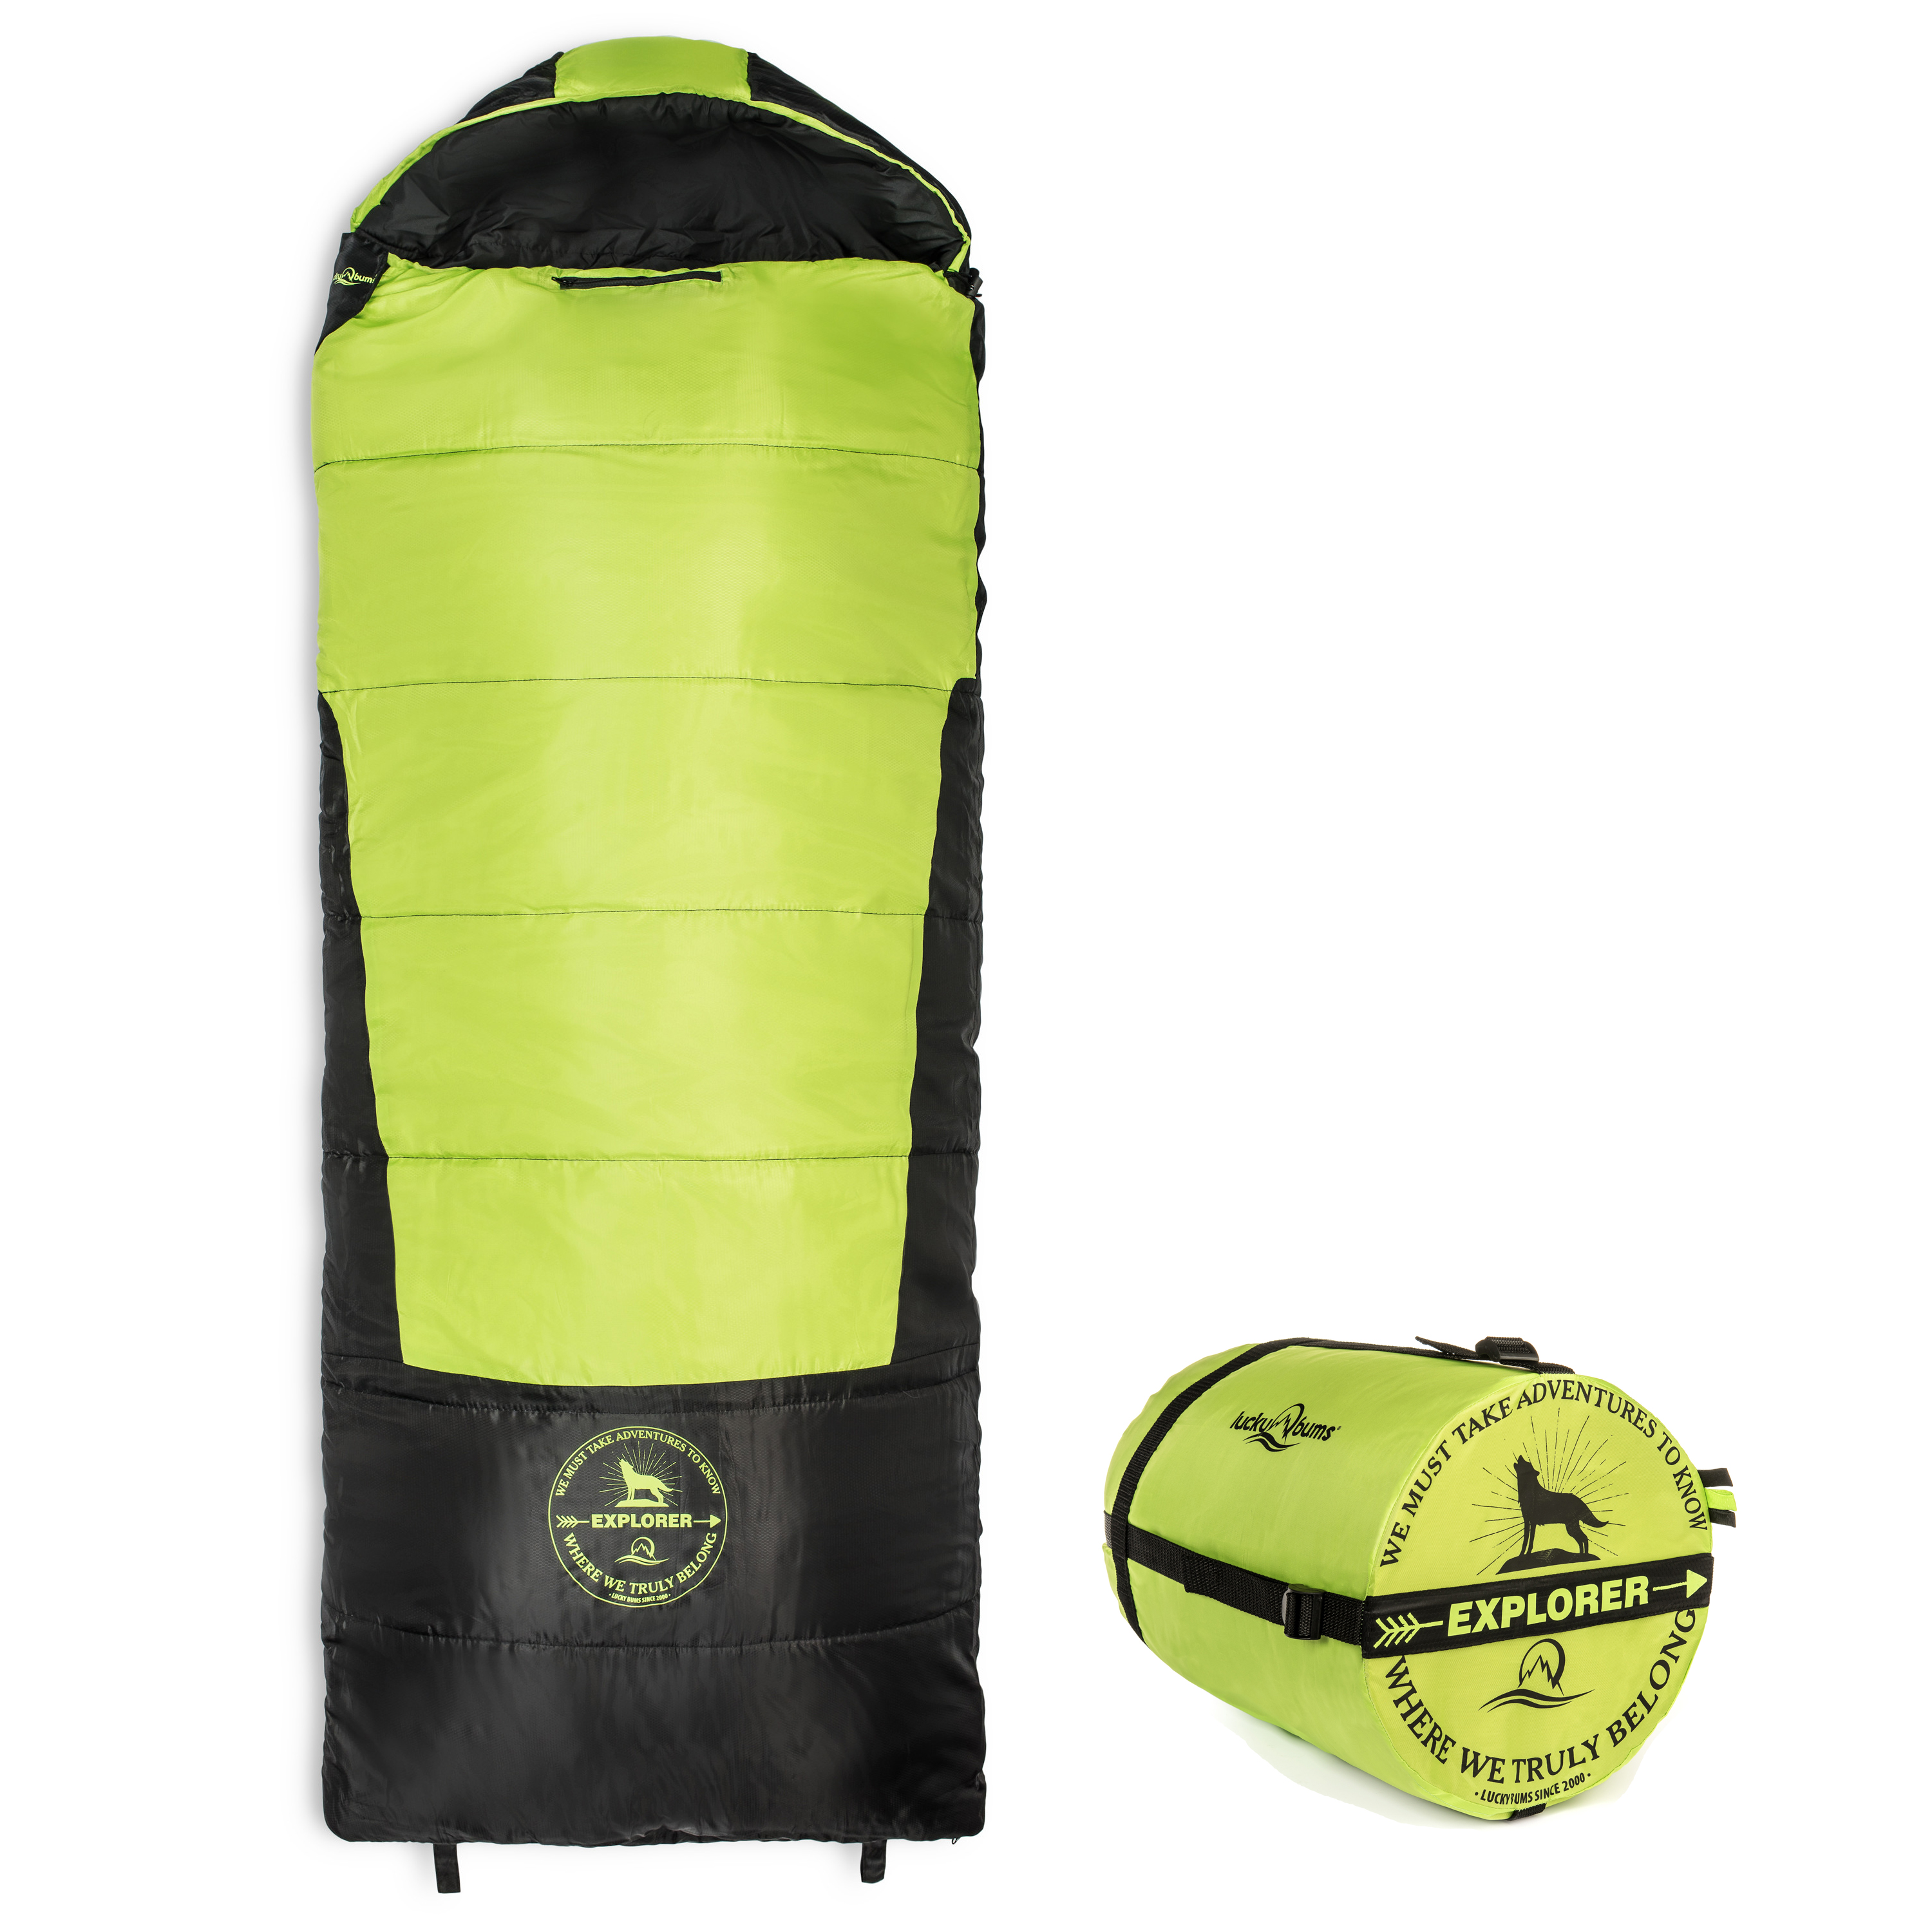 Lucky Bums Youth Explorer 30F/-1C Temperature Rated Envelope Style Sleeping Bag, Compressing Carry Bag Included, Blue